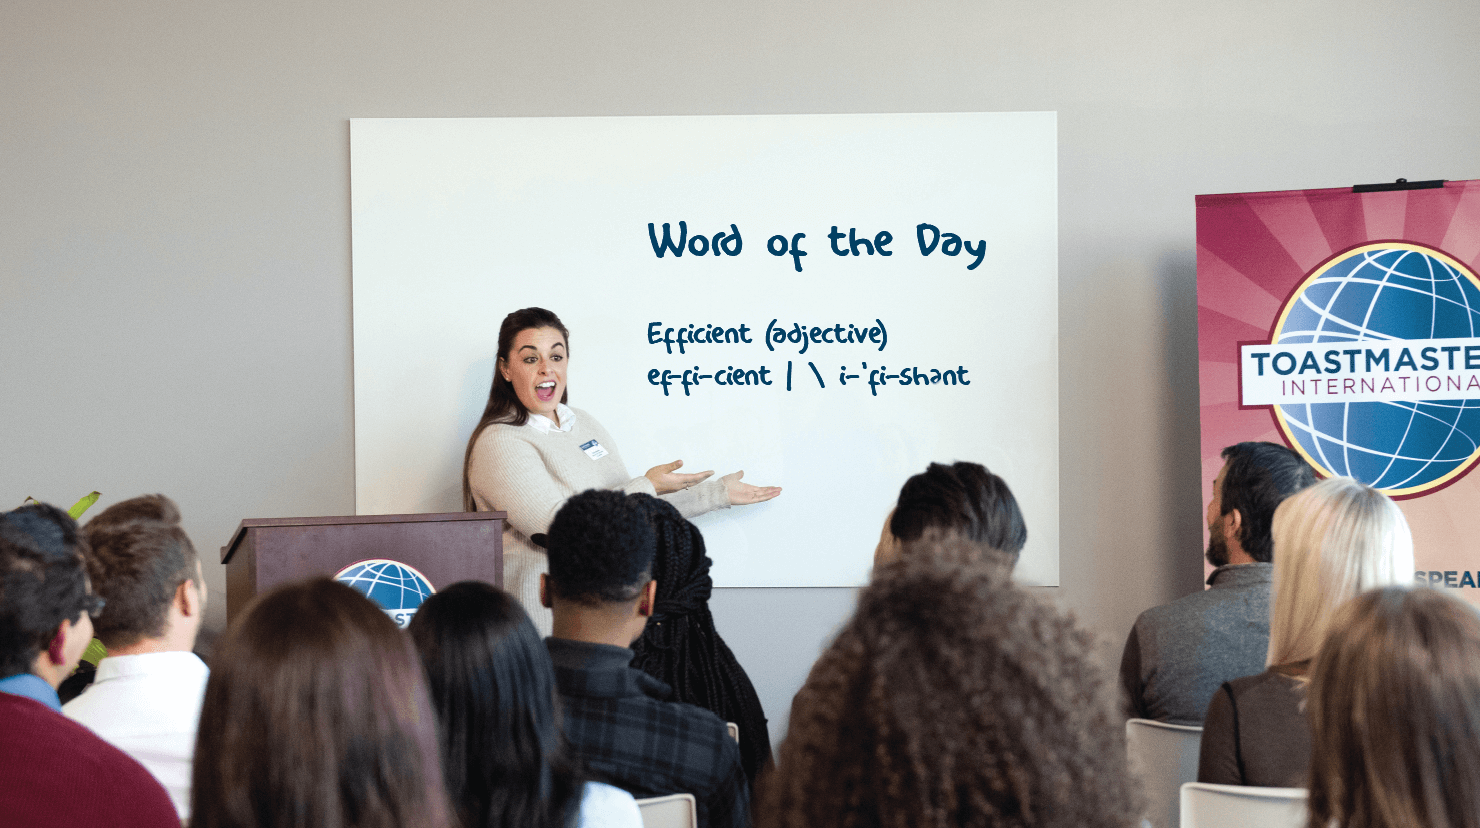 Woman stands in front of white board at Toastmasters meeting